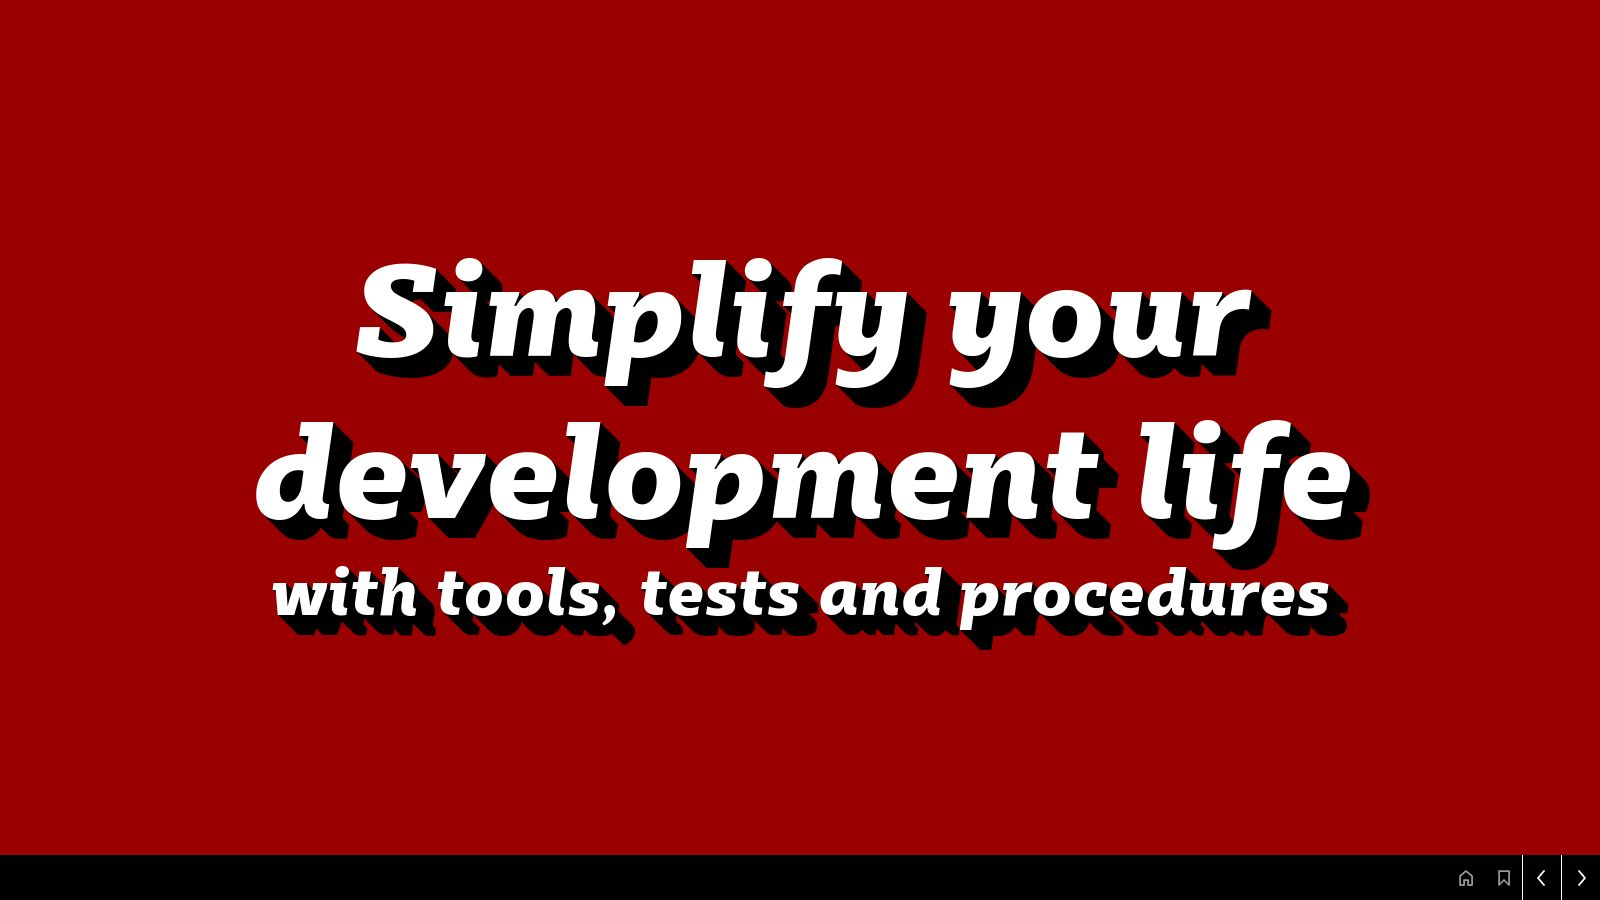 Simplify your development life with tools, tests and procedures